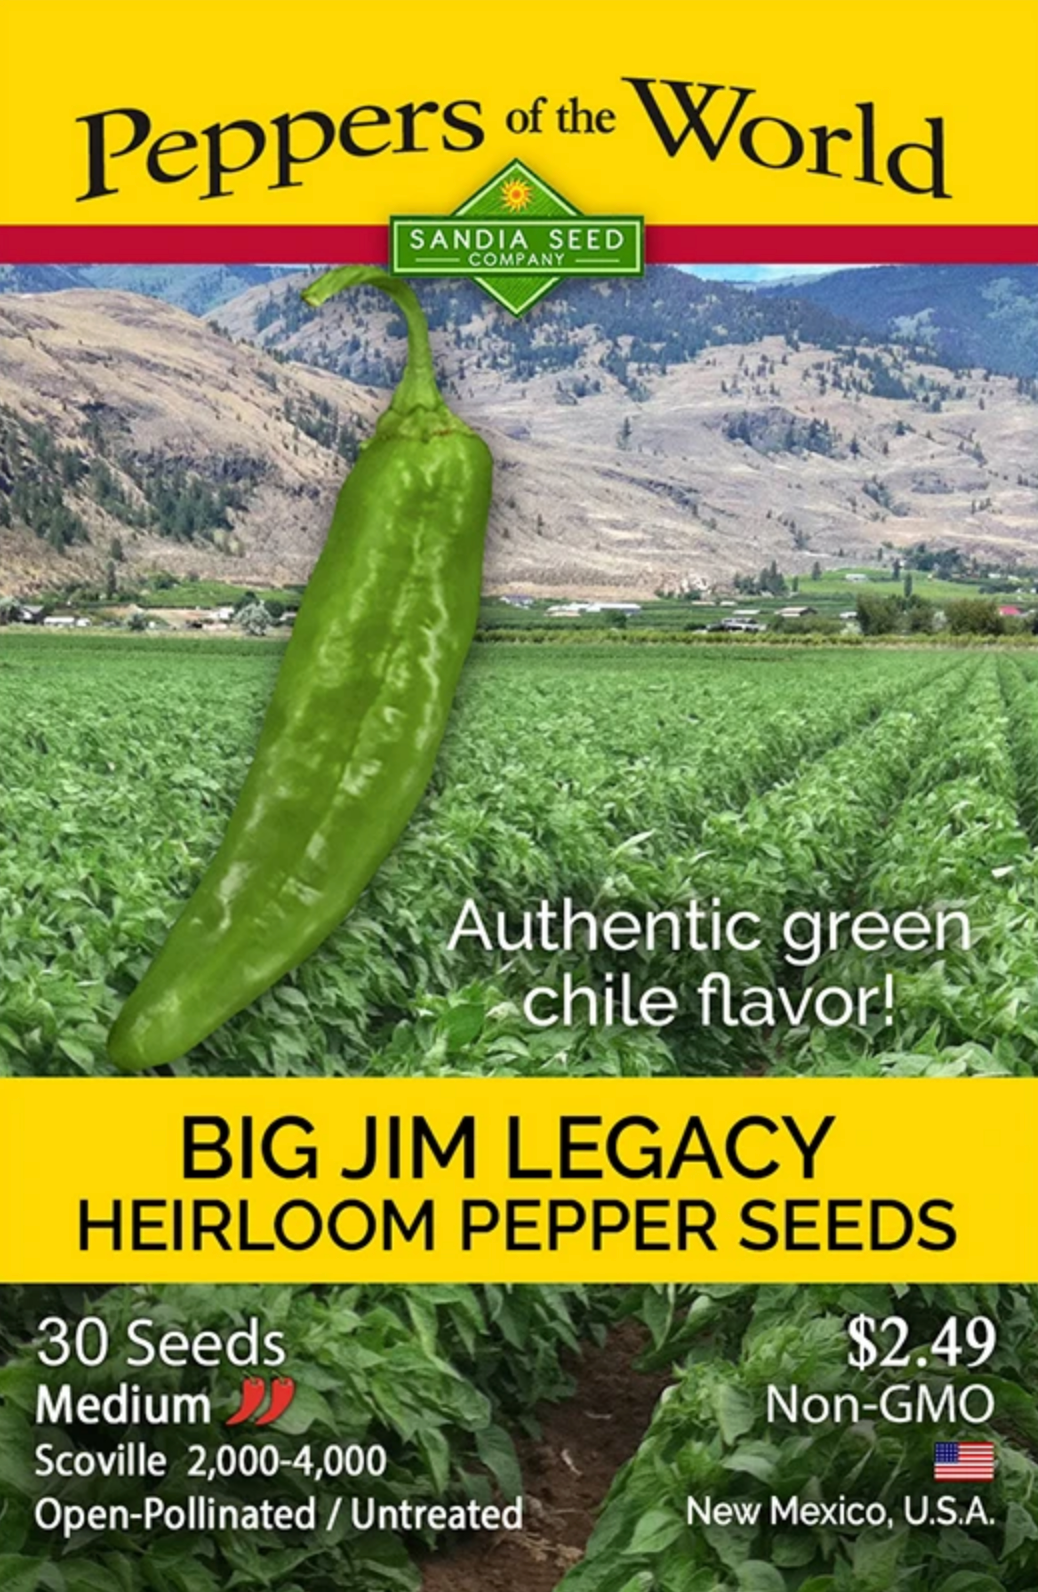 Big Jim Chile Seeds from SandiaSeed.com